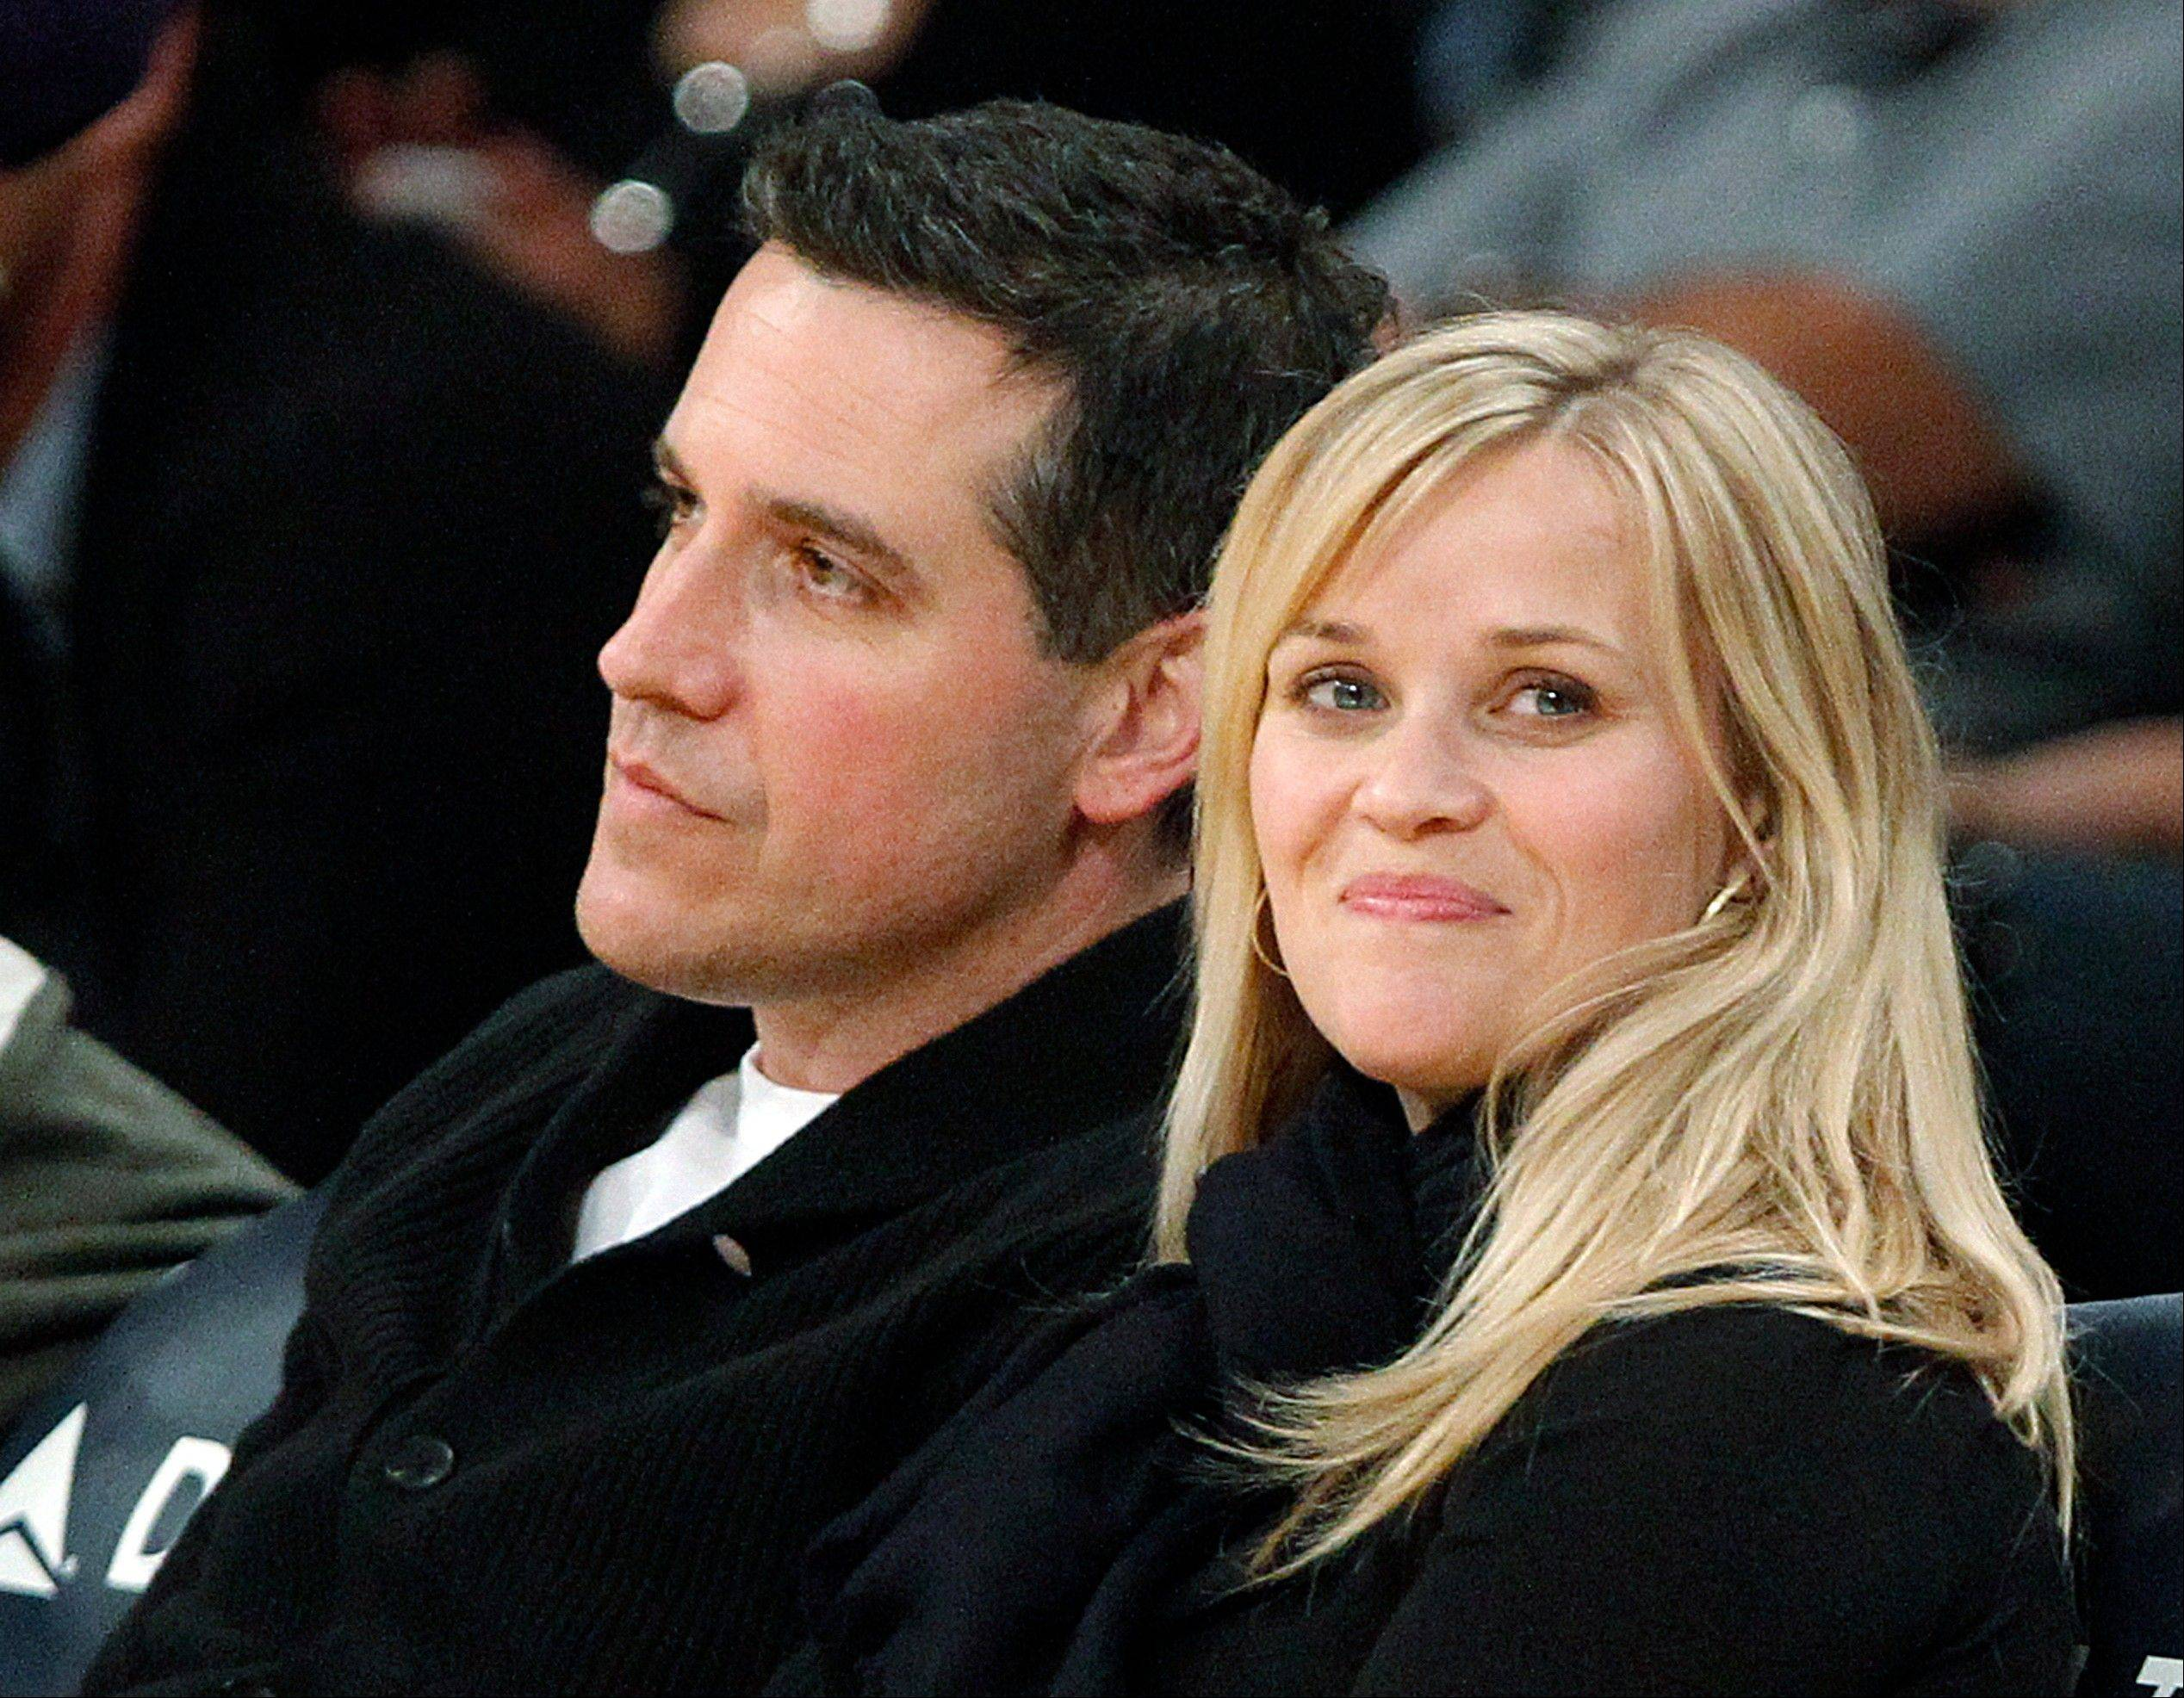 In this Friday, March 8, 2013 file photo, actress Reese Witherspoon and her husband, Jim Toth, watch the Toronto Raptors take on the Los Angeles Lakers in an NBA basketball game in Los Angeles. Police in Georgia say that Witherspoon has been arrested on a disorderly conduct charge after a traffic stop involving her husband in Atlanta. A Georgia State Police incident report says that Witherspoon was arrested early Friday, April 19, 2013, and charged with disorderly conduct. The report says a state trooper observed that a car driven by Toth was failing to stay in its lane. The officer writes that Witherspoon disobeyed multiple orders to stay in the car while he performed a field sobriety test on Toth, accoring to the polcie report.